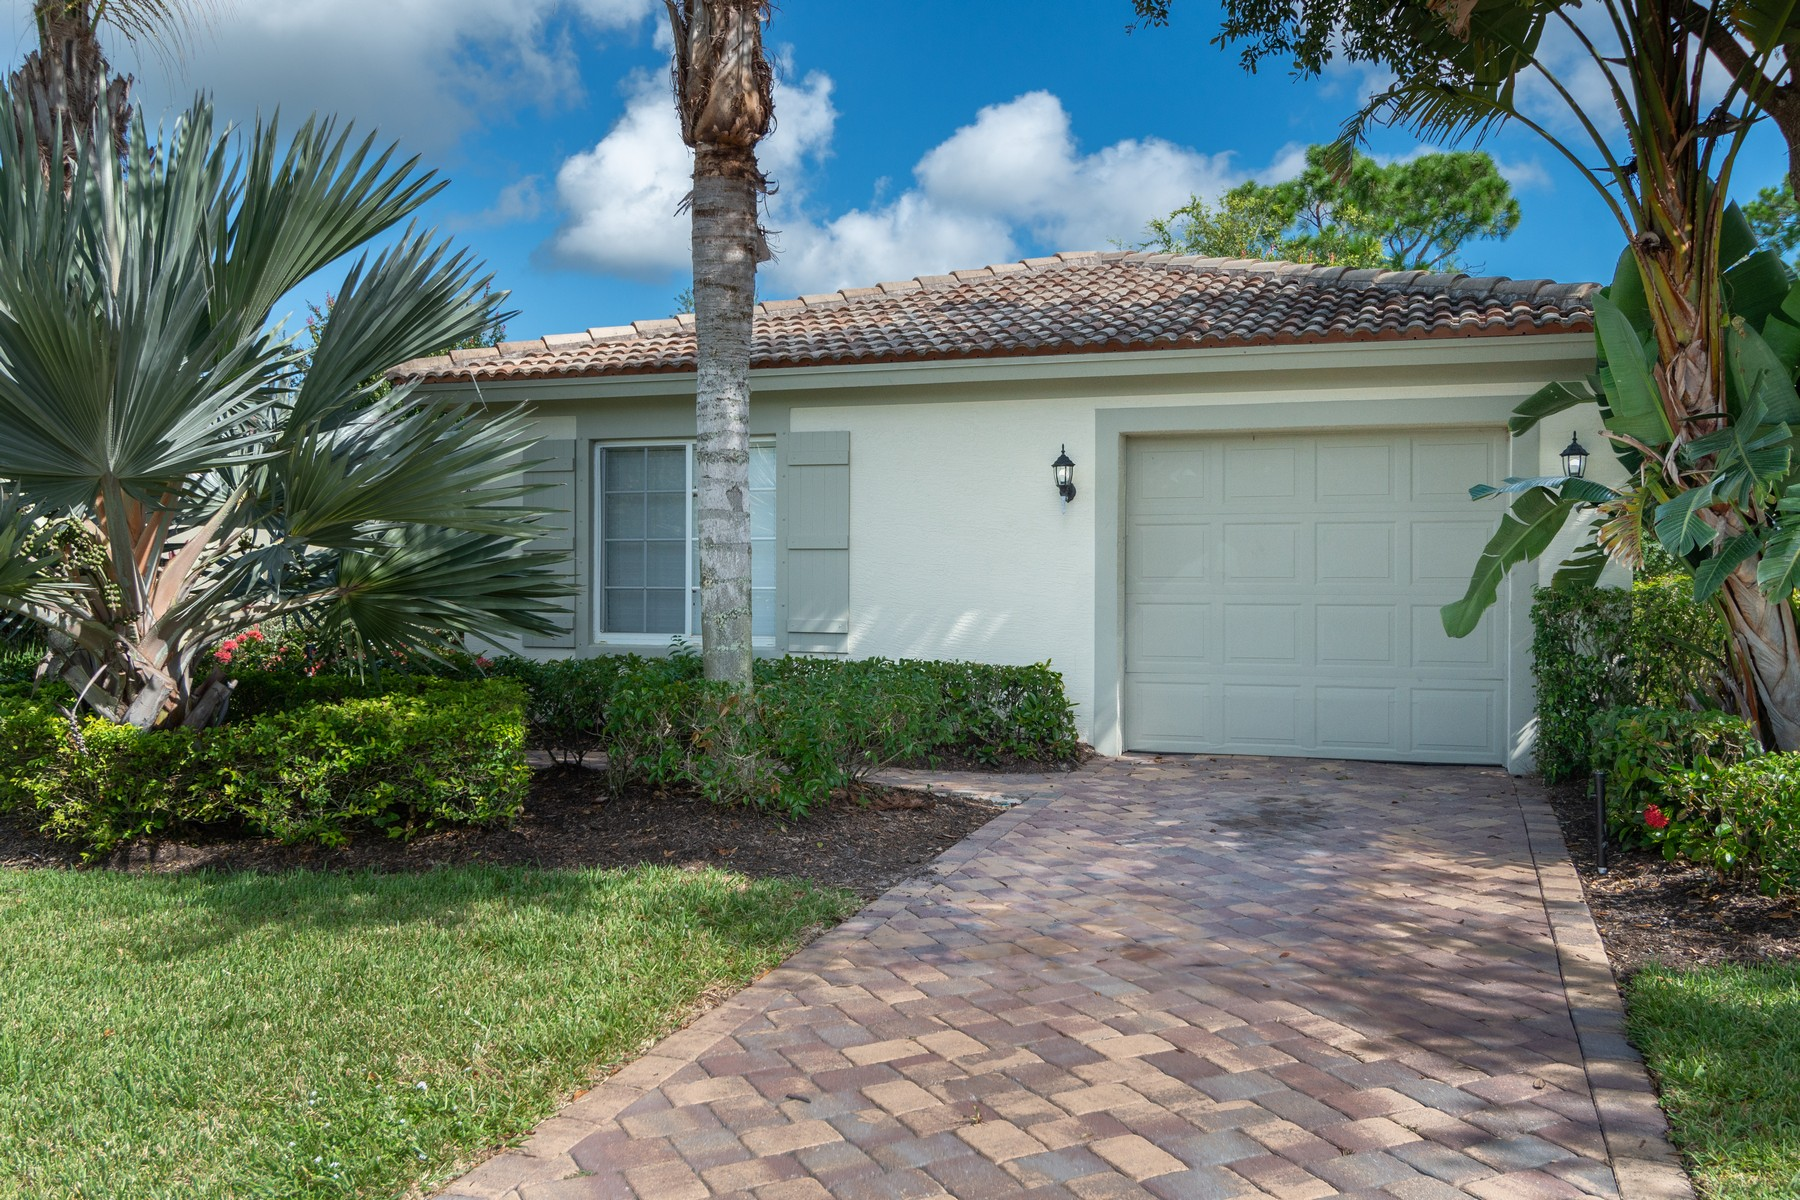 Single Family Homes for Sale at Verolago Three Bedroom Home 4248 56th Lane Vero Beach, Florida 32967 United States